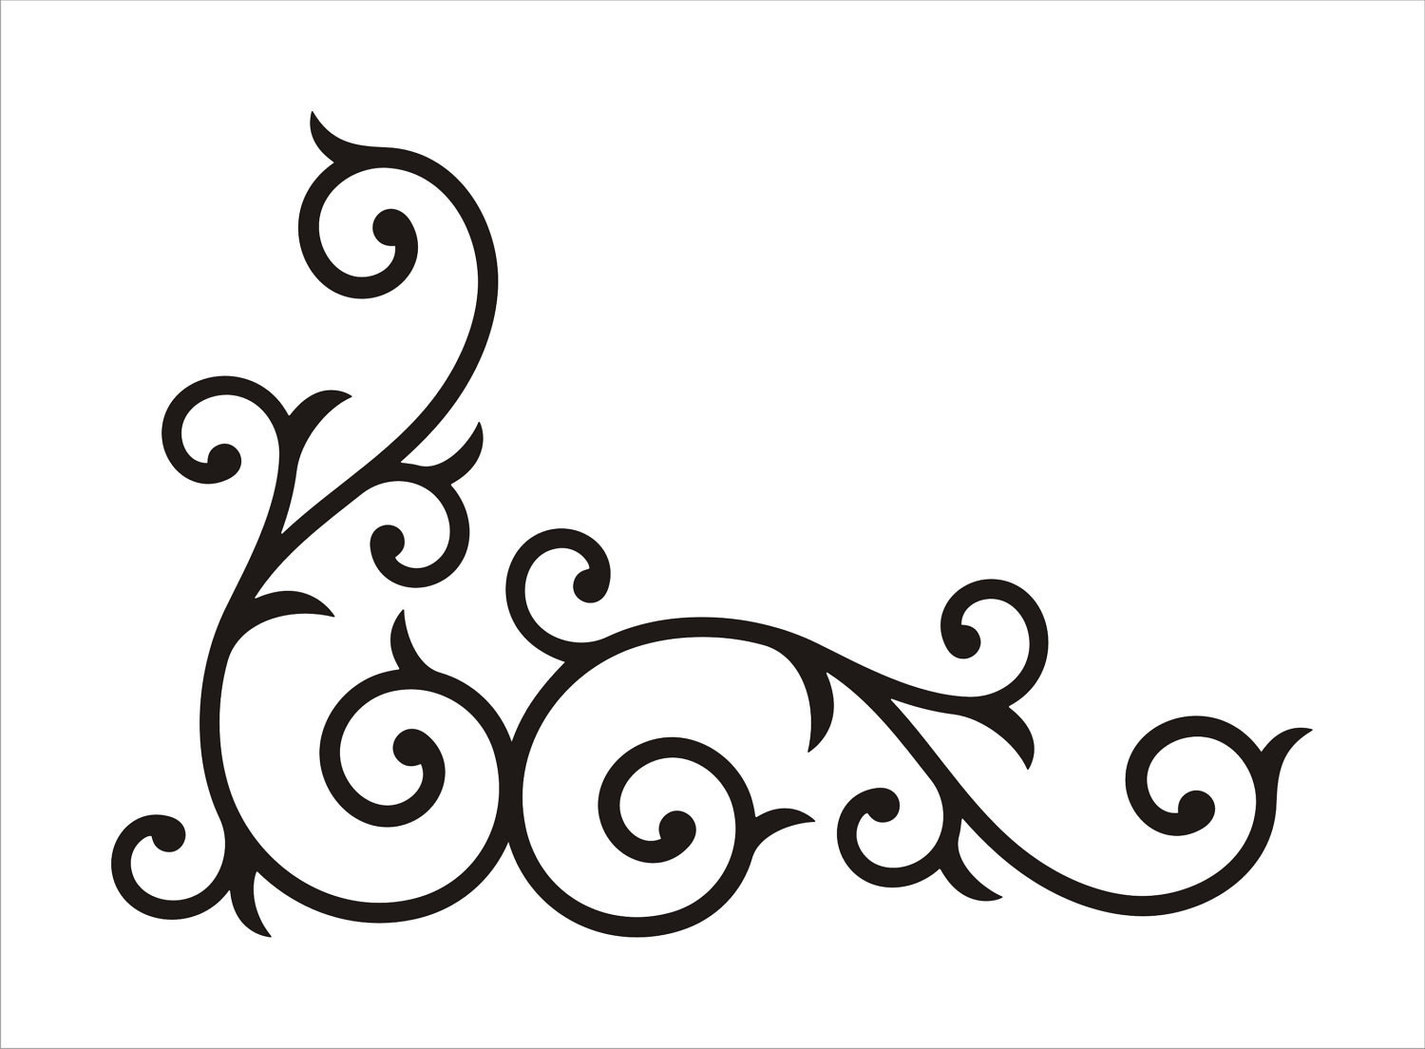 swirls and hearts clipart free download best swirls and hearts clipart on. Black Bedroom Furniture Sets. Home Design Ideas